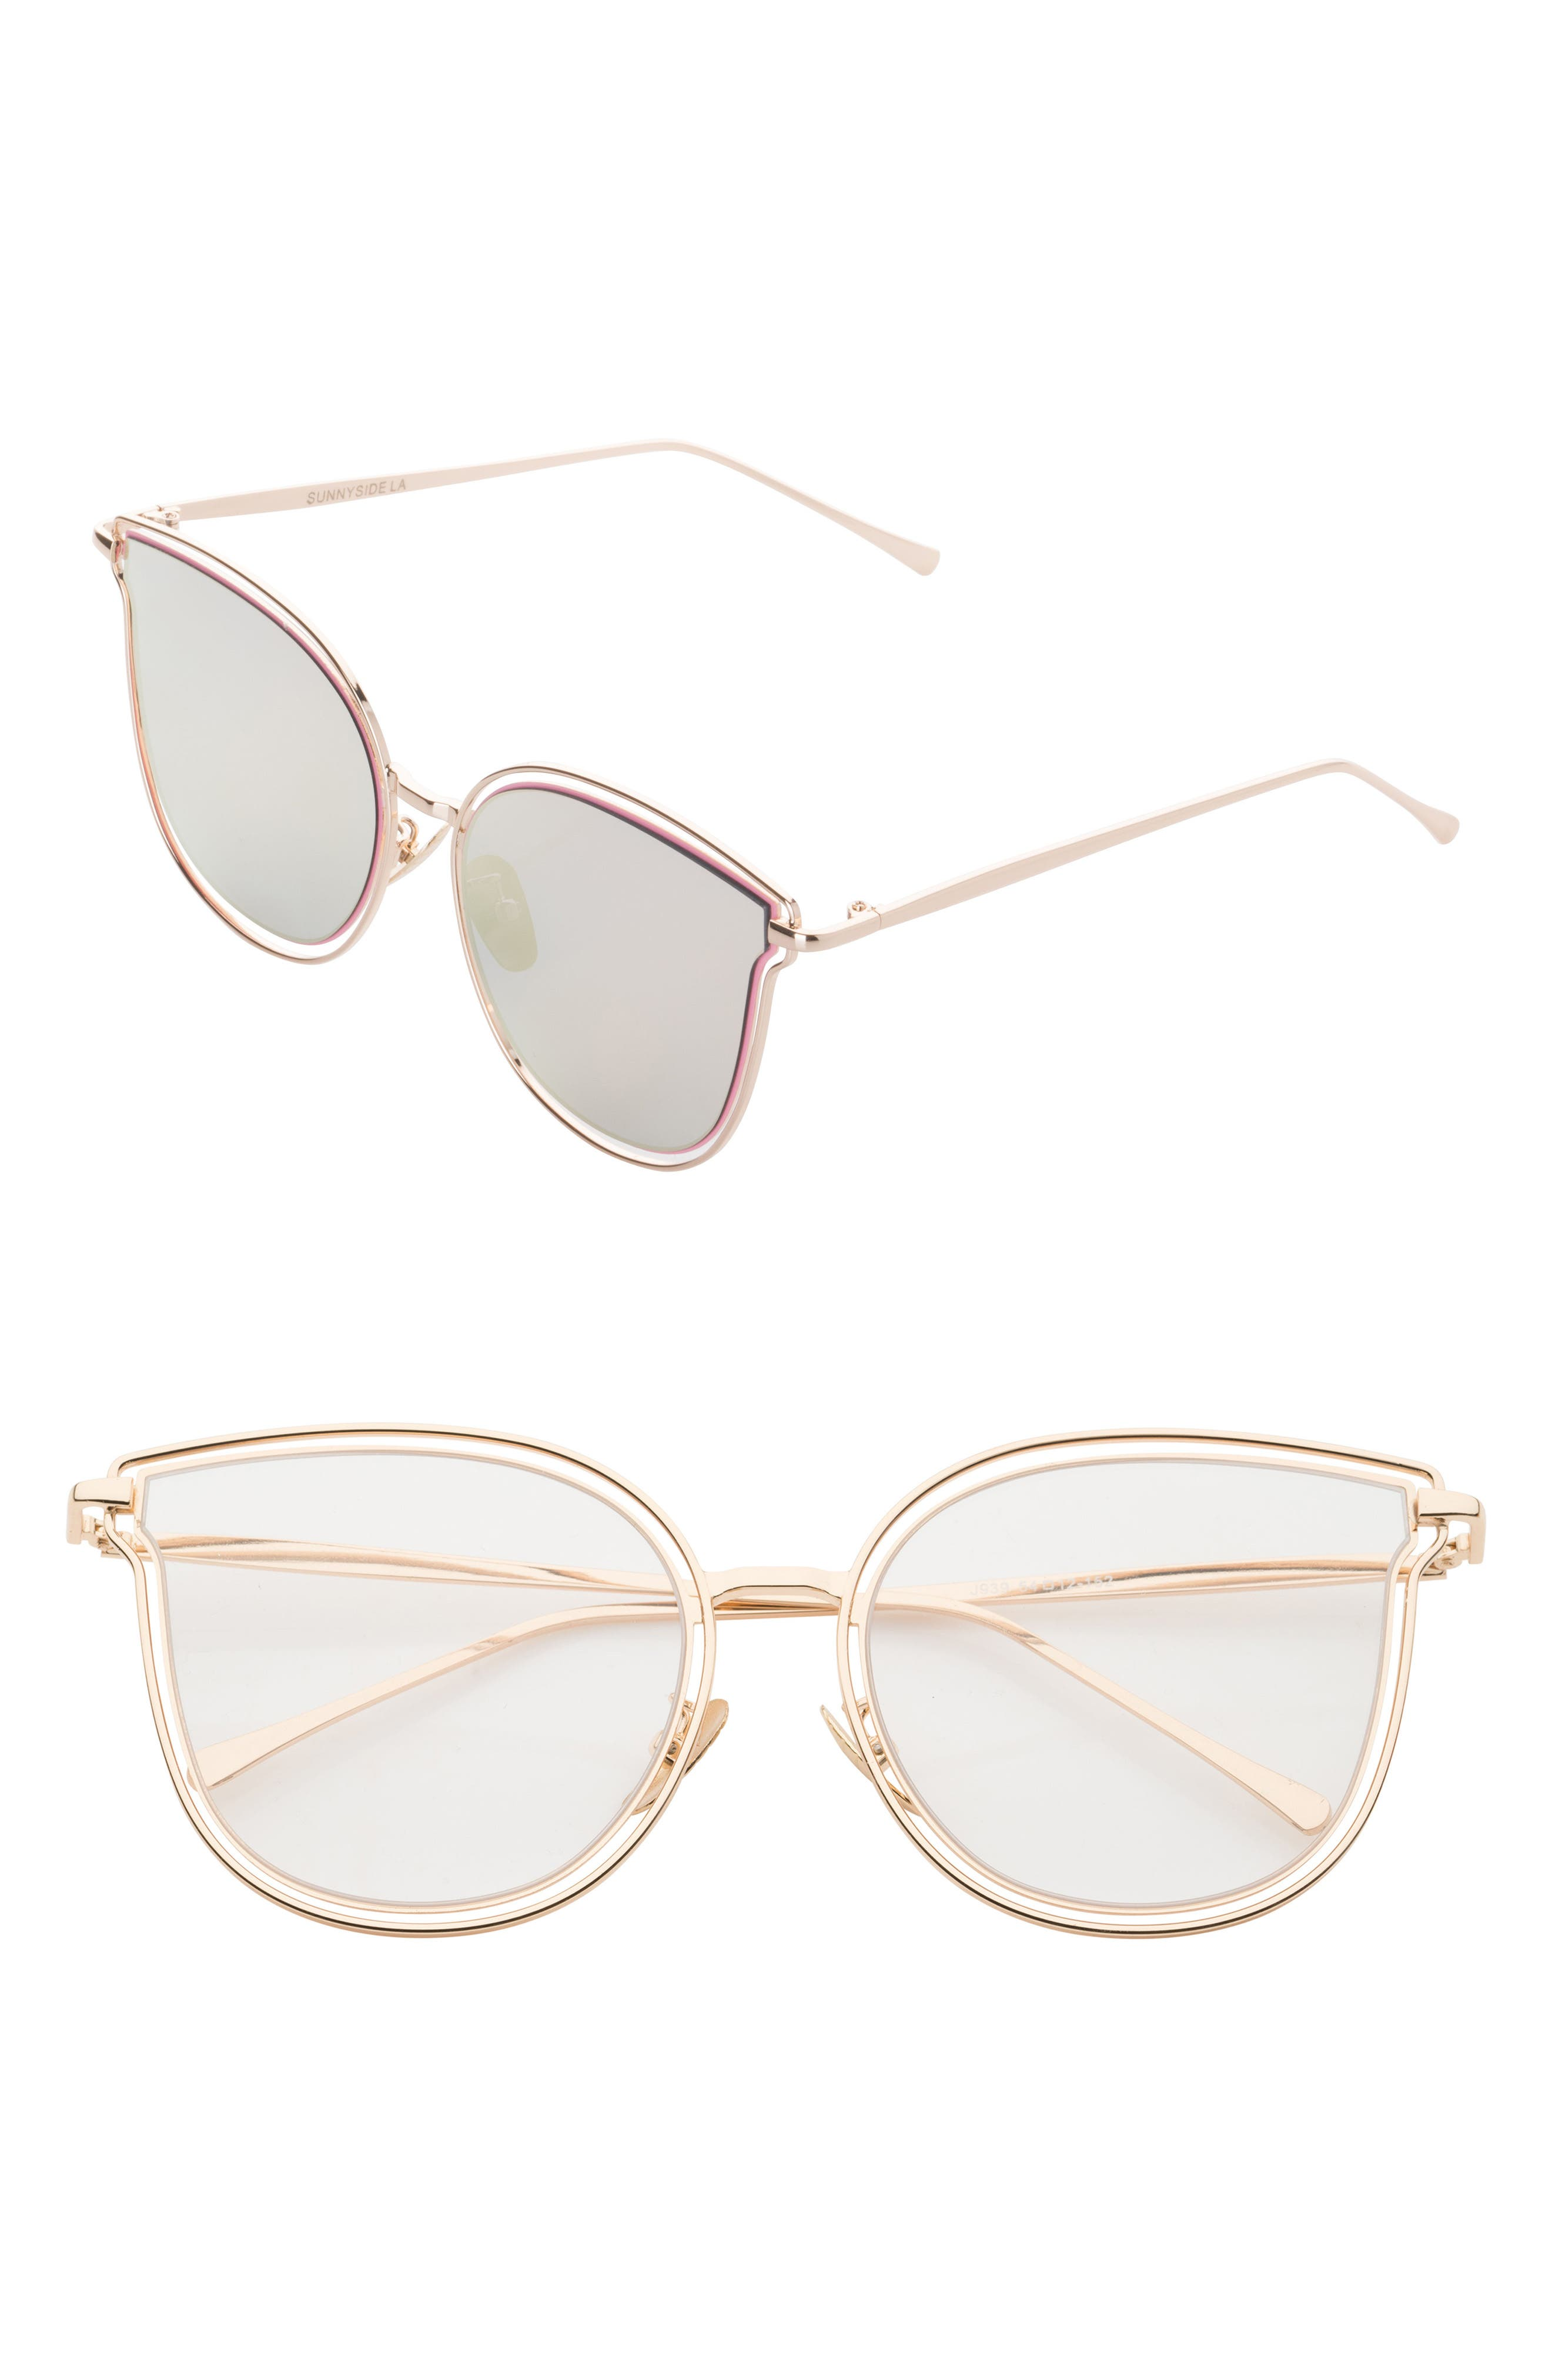 54mm Cat Eye Clear Glasses,                         Main,                         color, 710